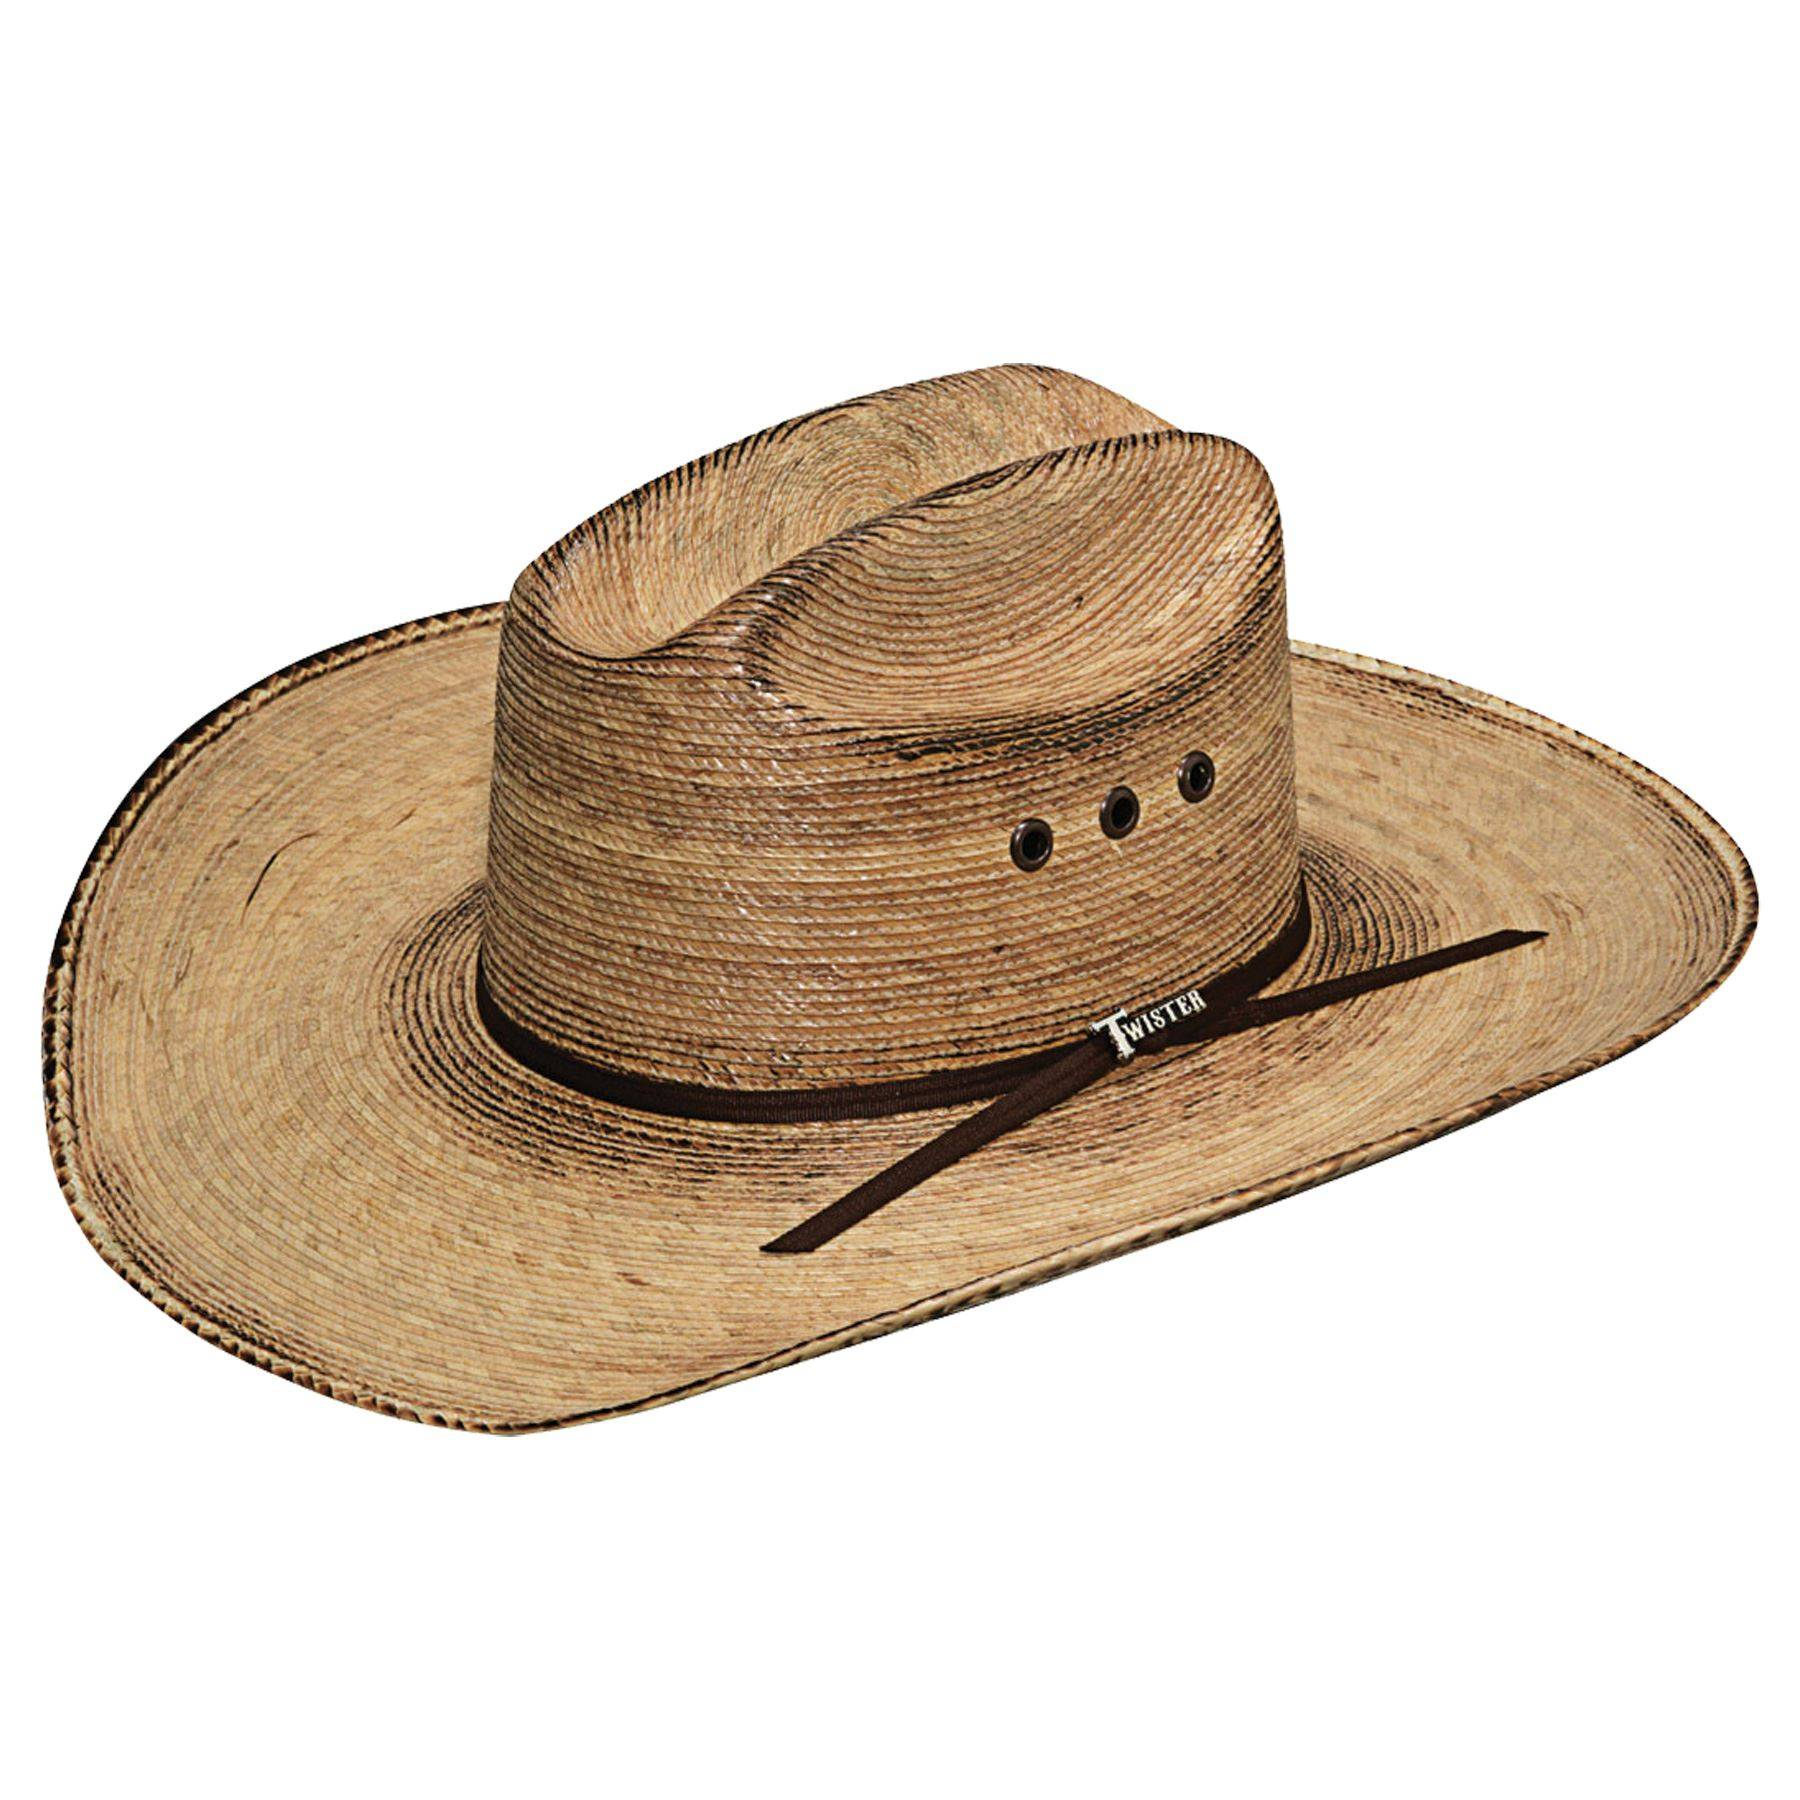 Twister Fired Palm Straw Cowboy Hat in Apparel Boots at Schneider ... 18198250397